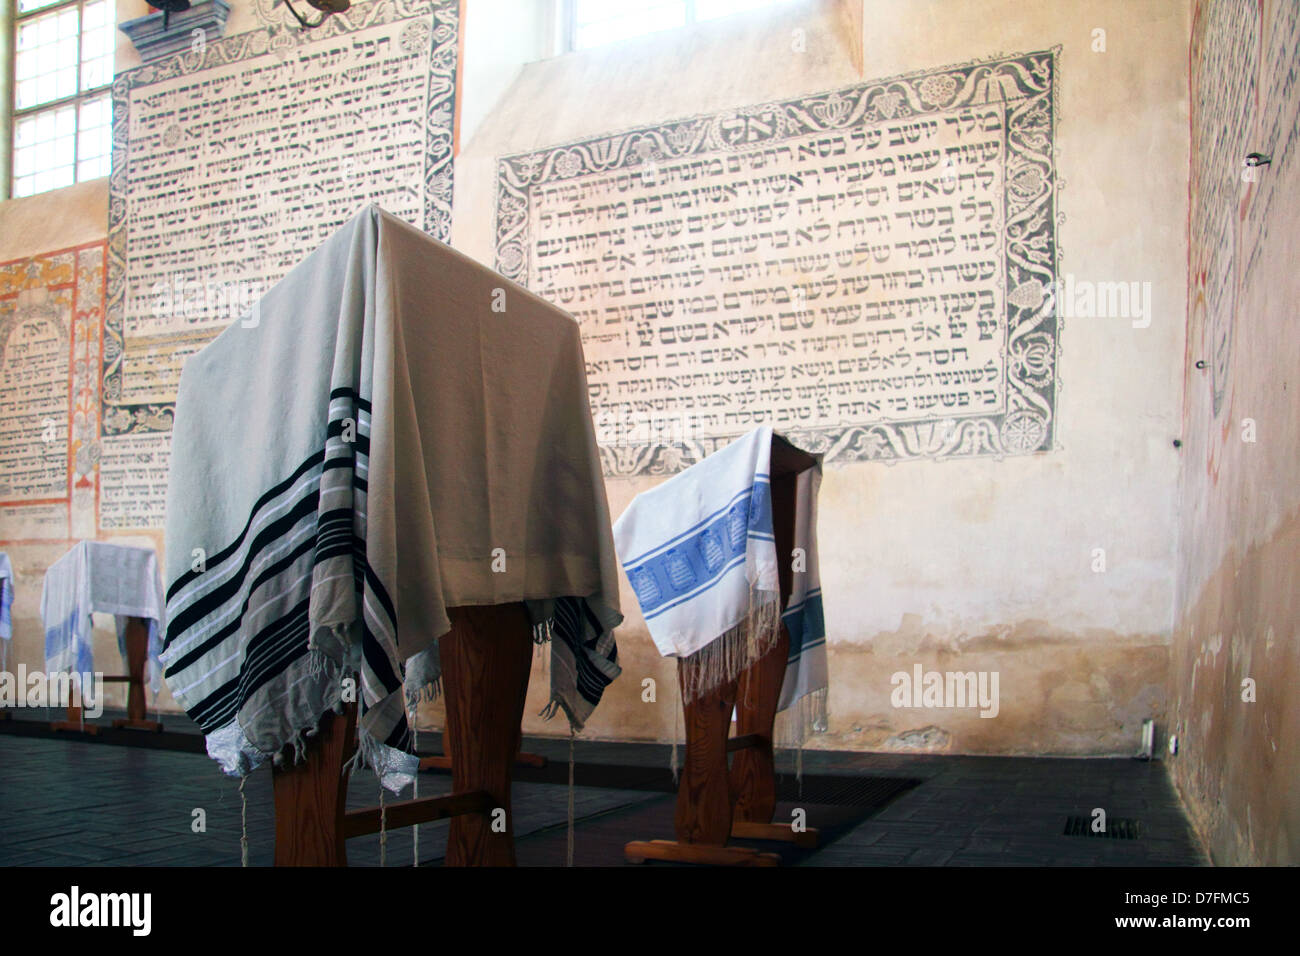 Prayer Shawls (Tallit) And Jewish Prayers Written In Hebrew On The Wall At Tykocin (Tiktin) Synagogue - Stock Image